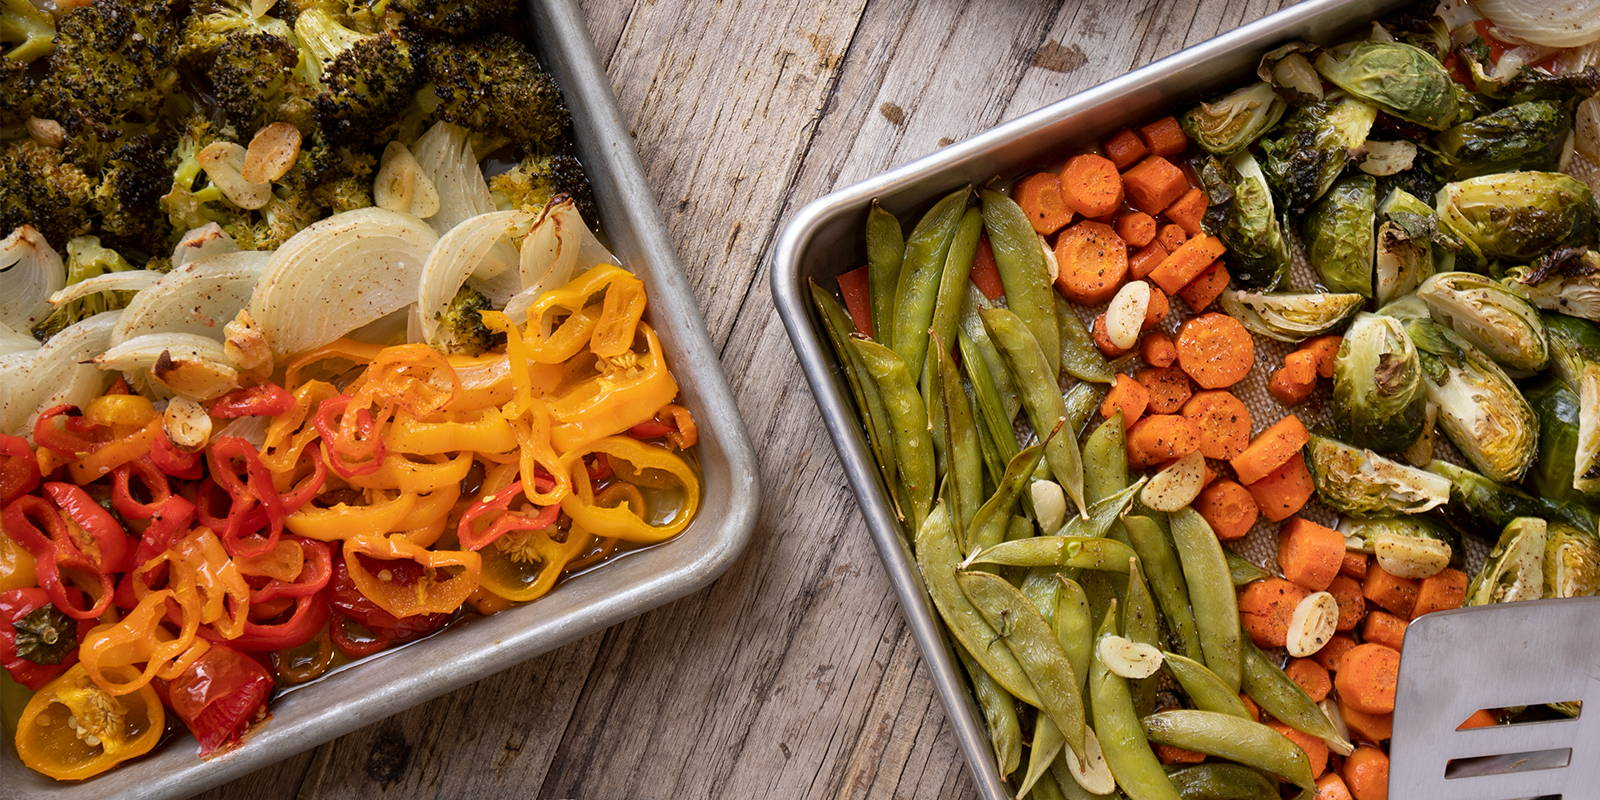 Vegan sheet pan recipes for serving guests and family.